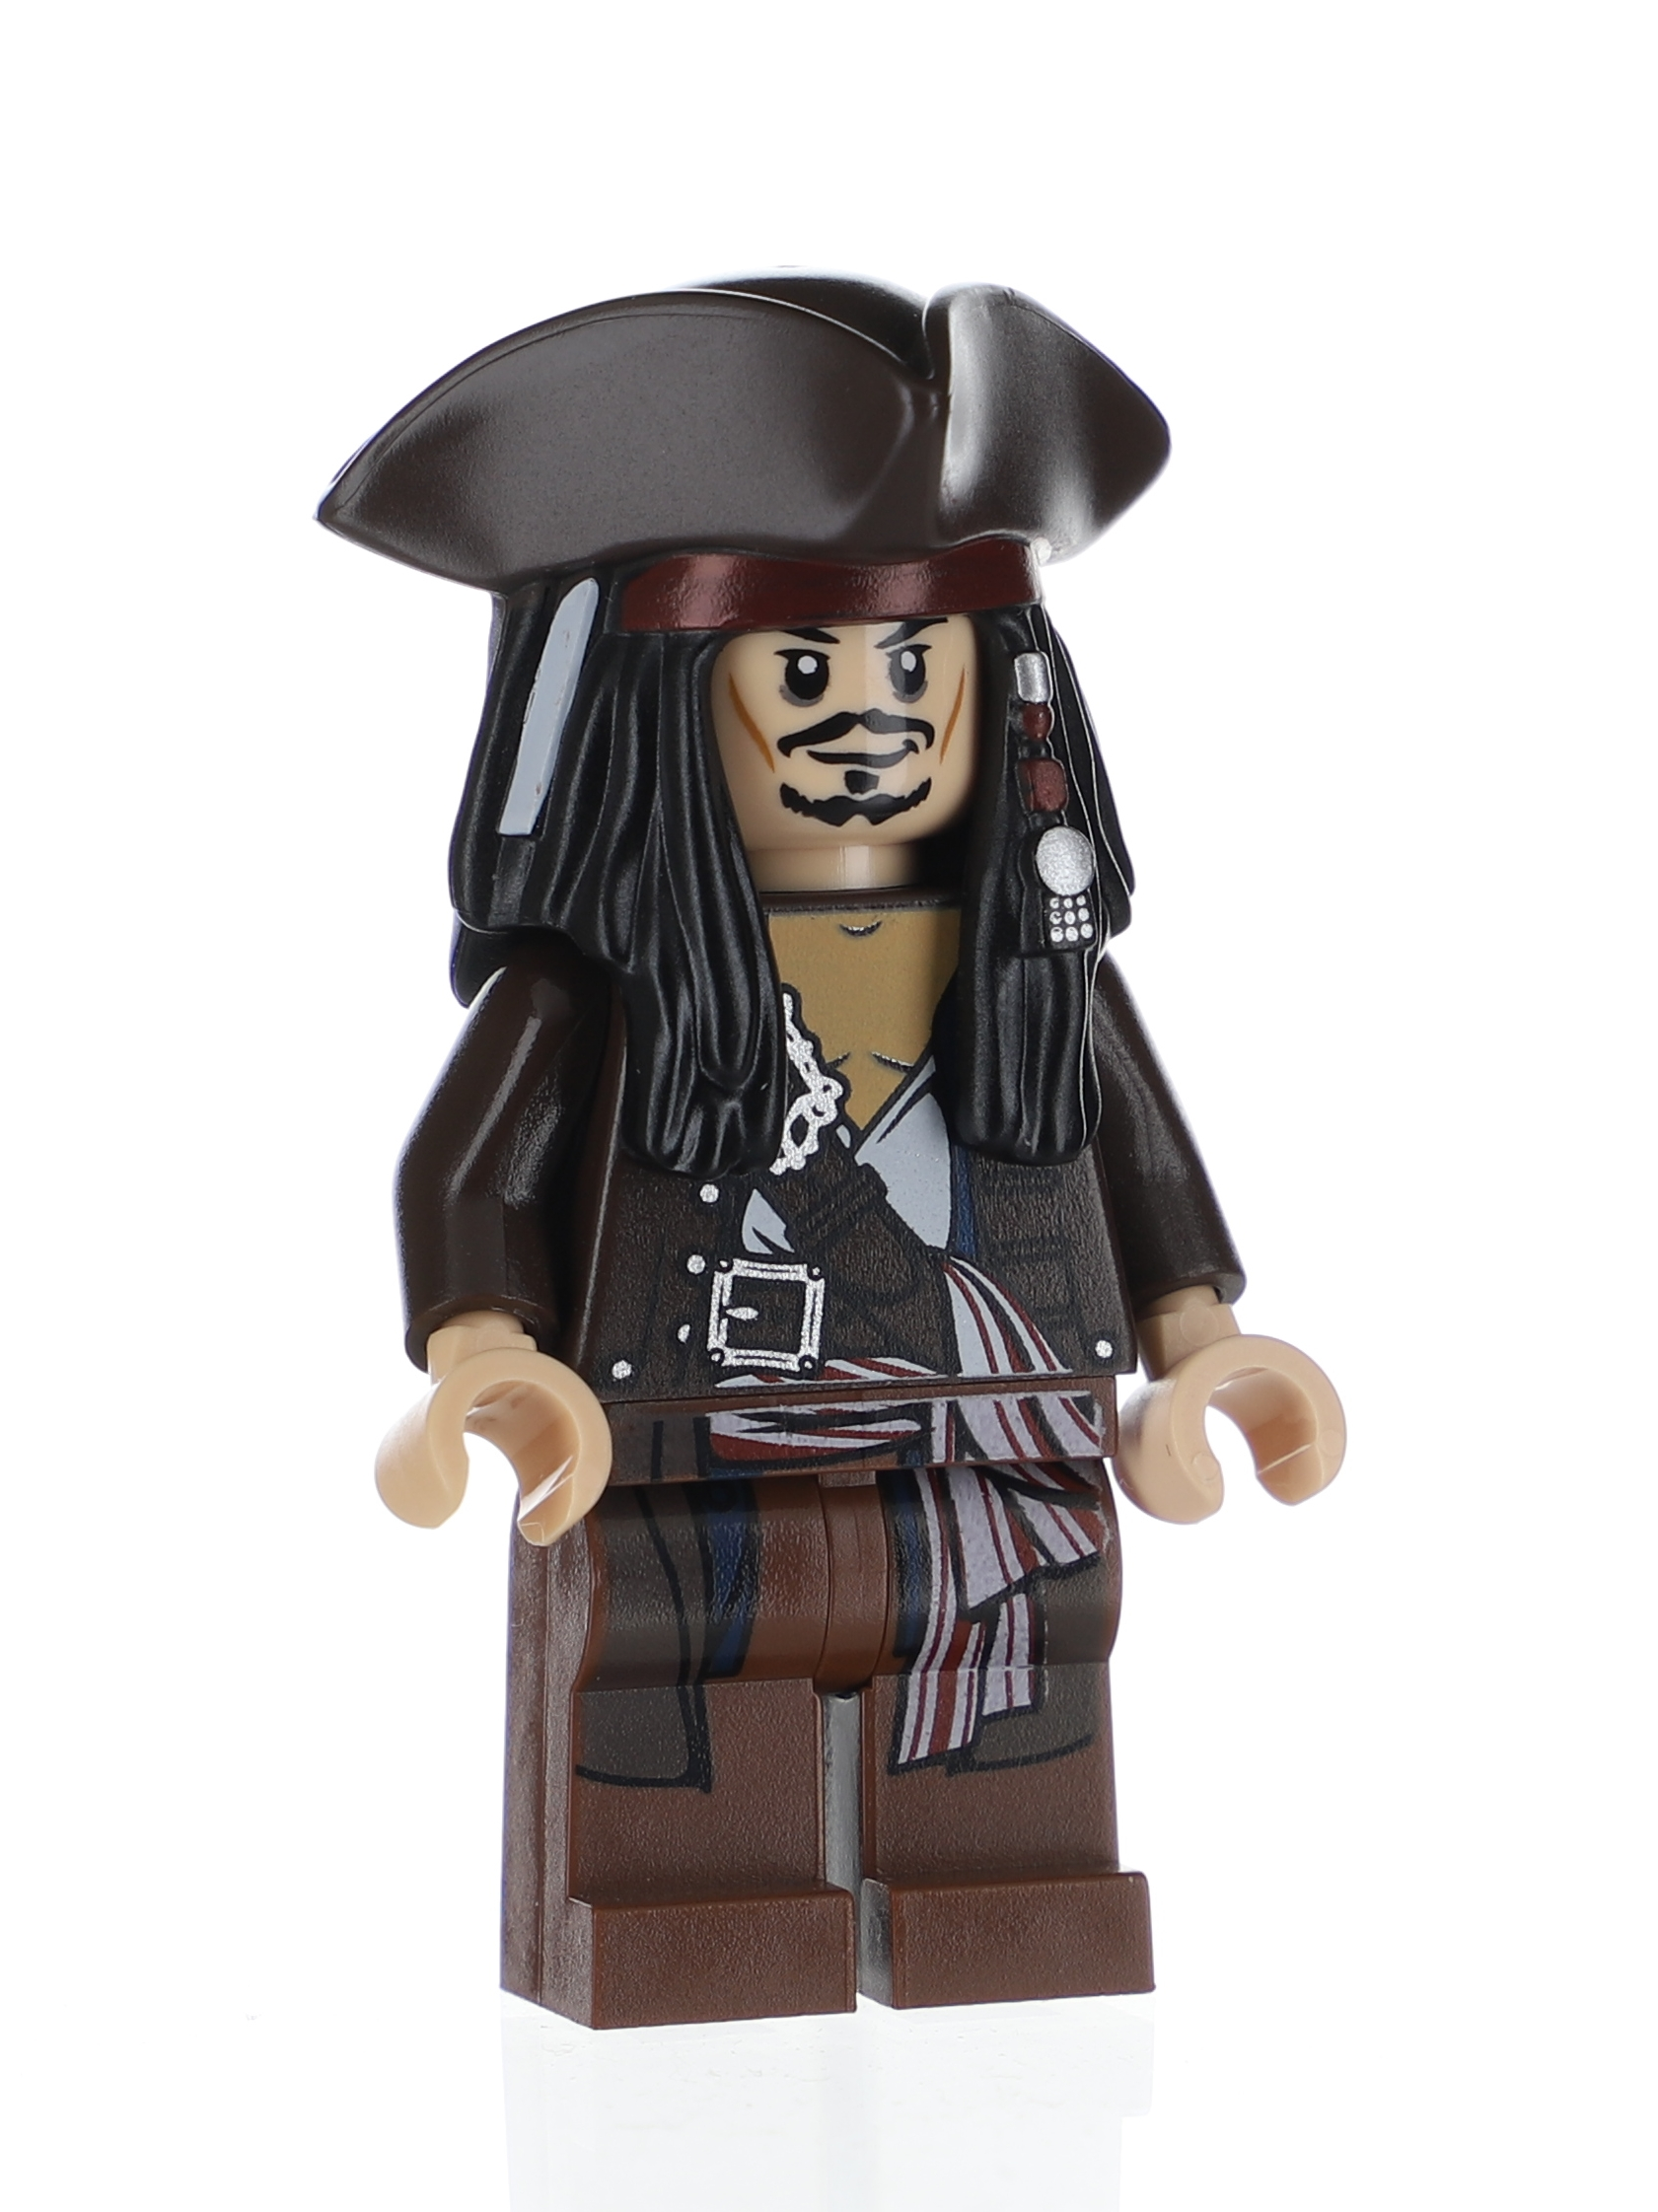 25 NEW Lego Captain Jack Sparrow Minifig Pirates of the Caribbean 4195 4193 4194